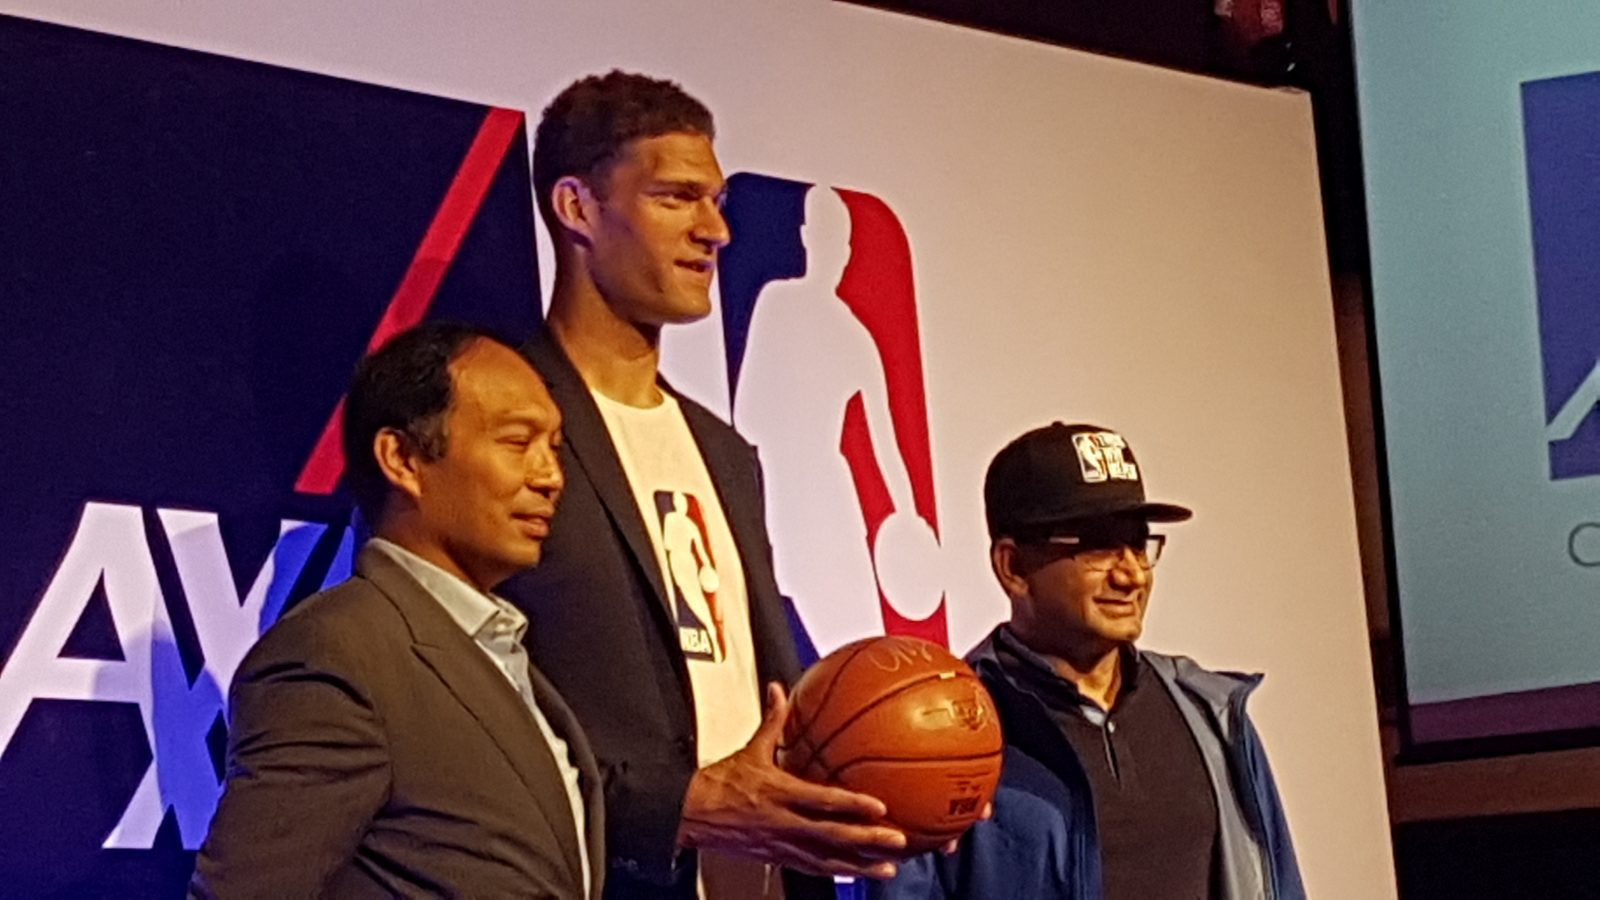 NBA and AXA Announce New Multiyear Partnership in the Philippines